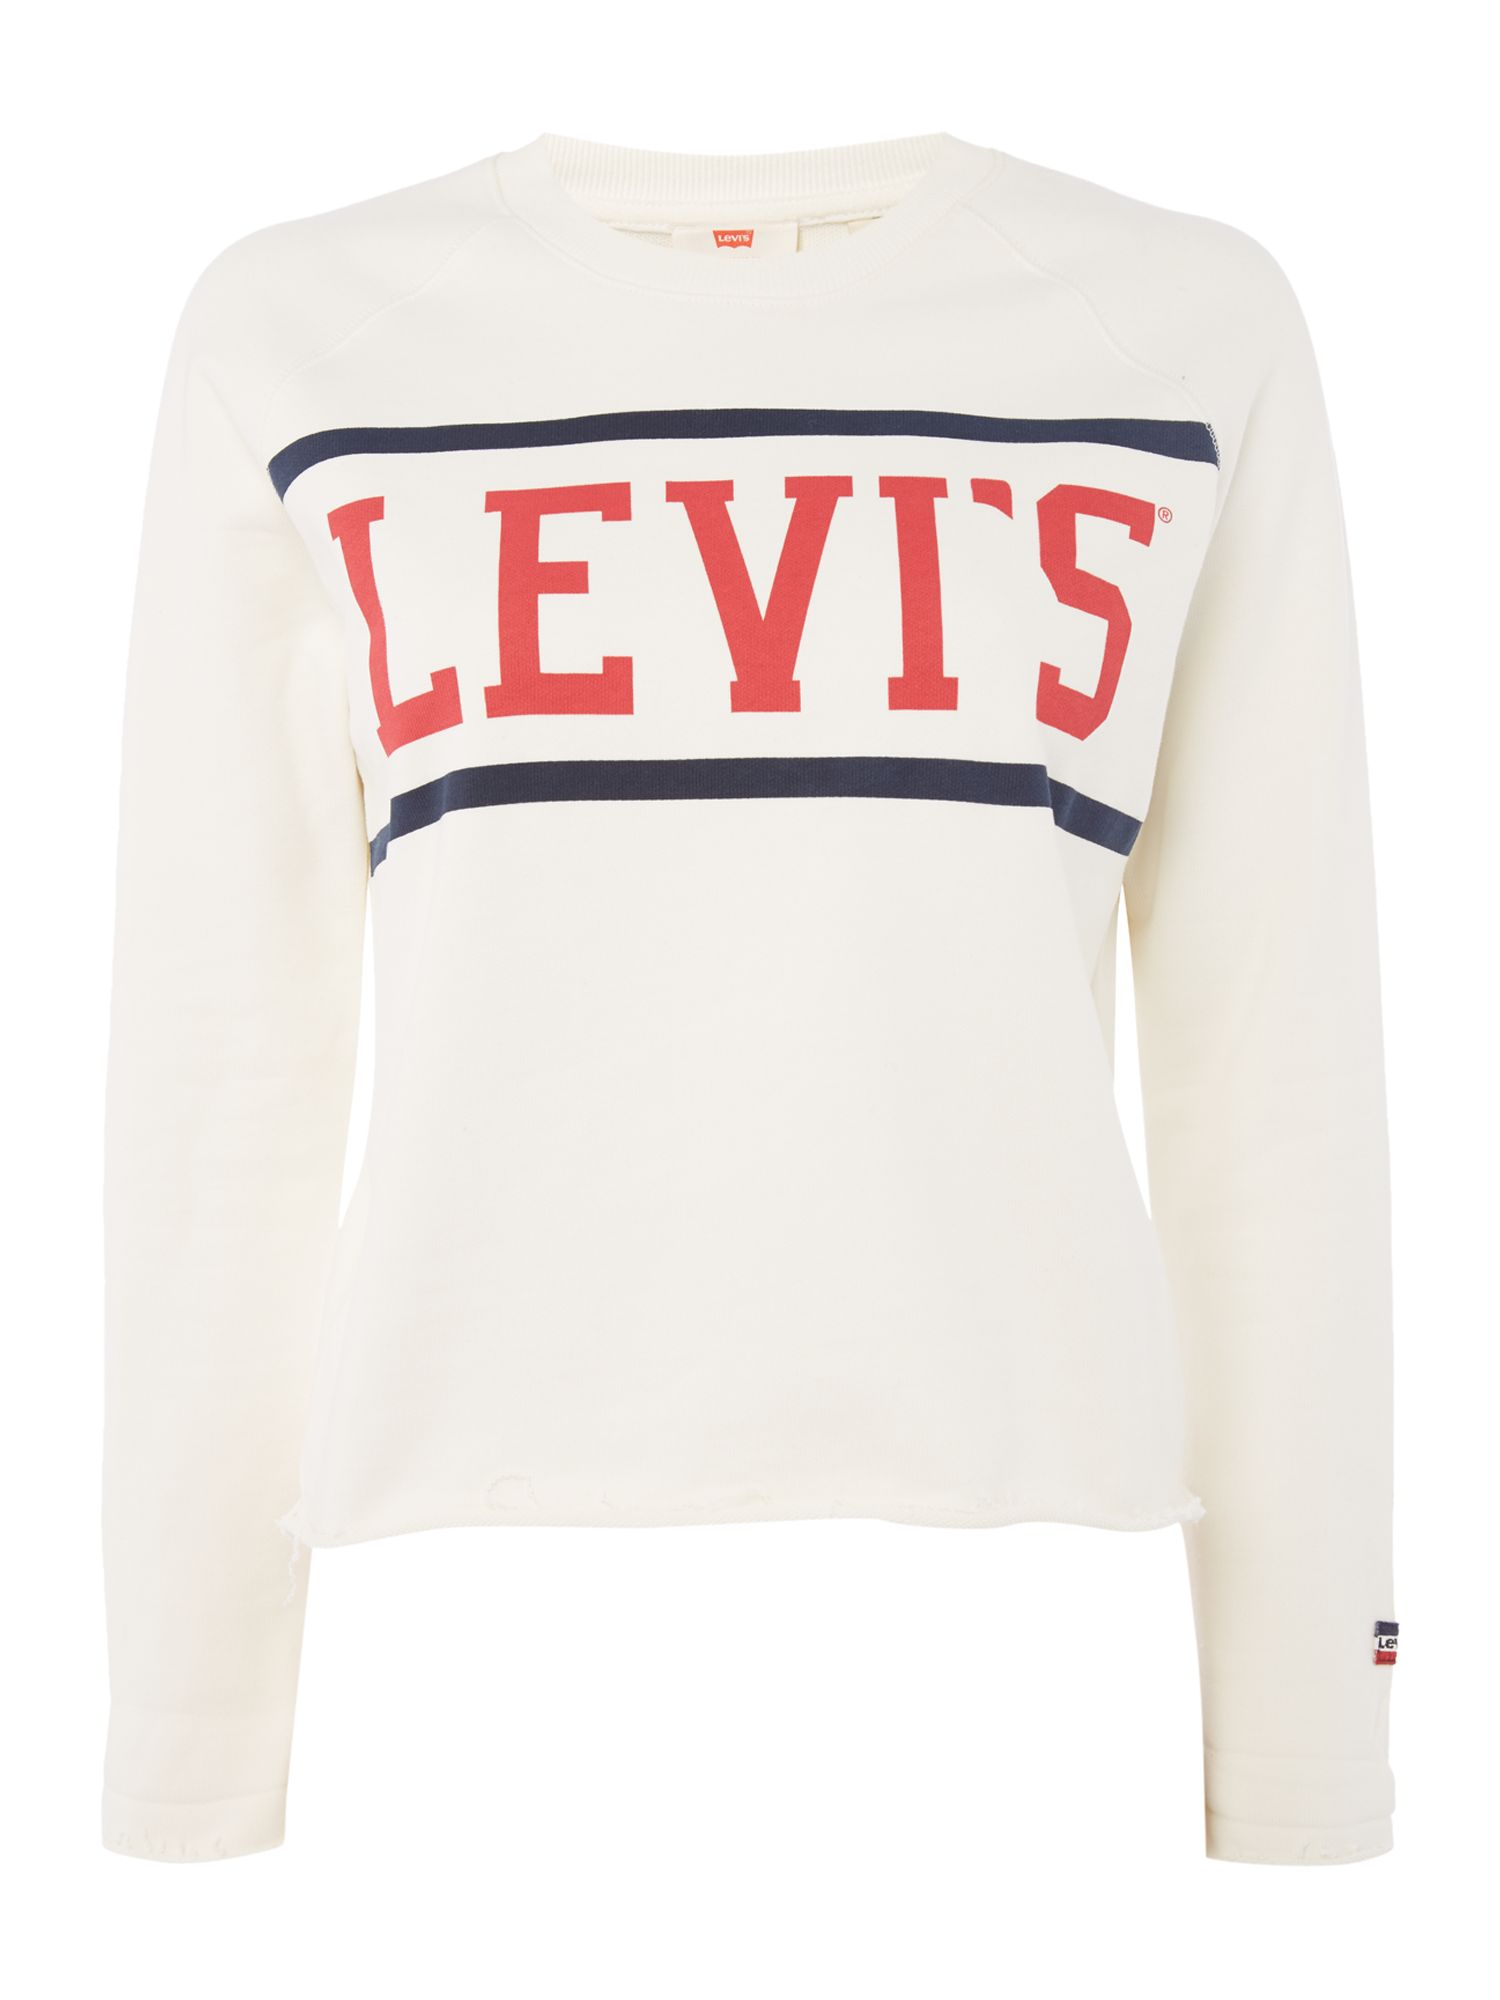 Levi's Graphic Sweatshirt In Fleece Sport Marshmallow, White